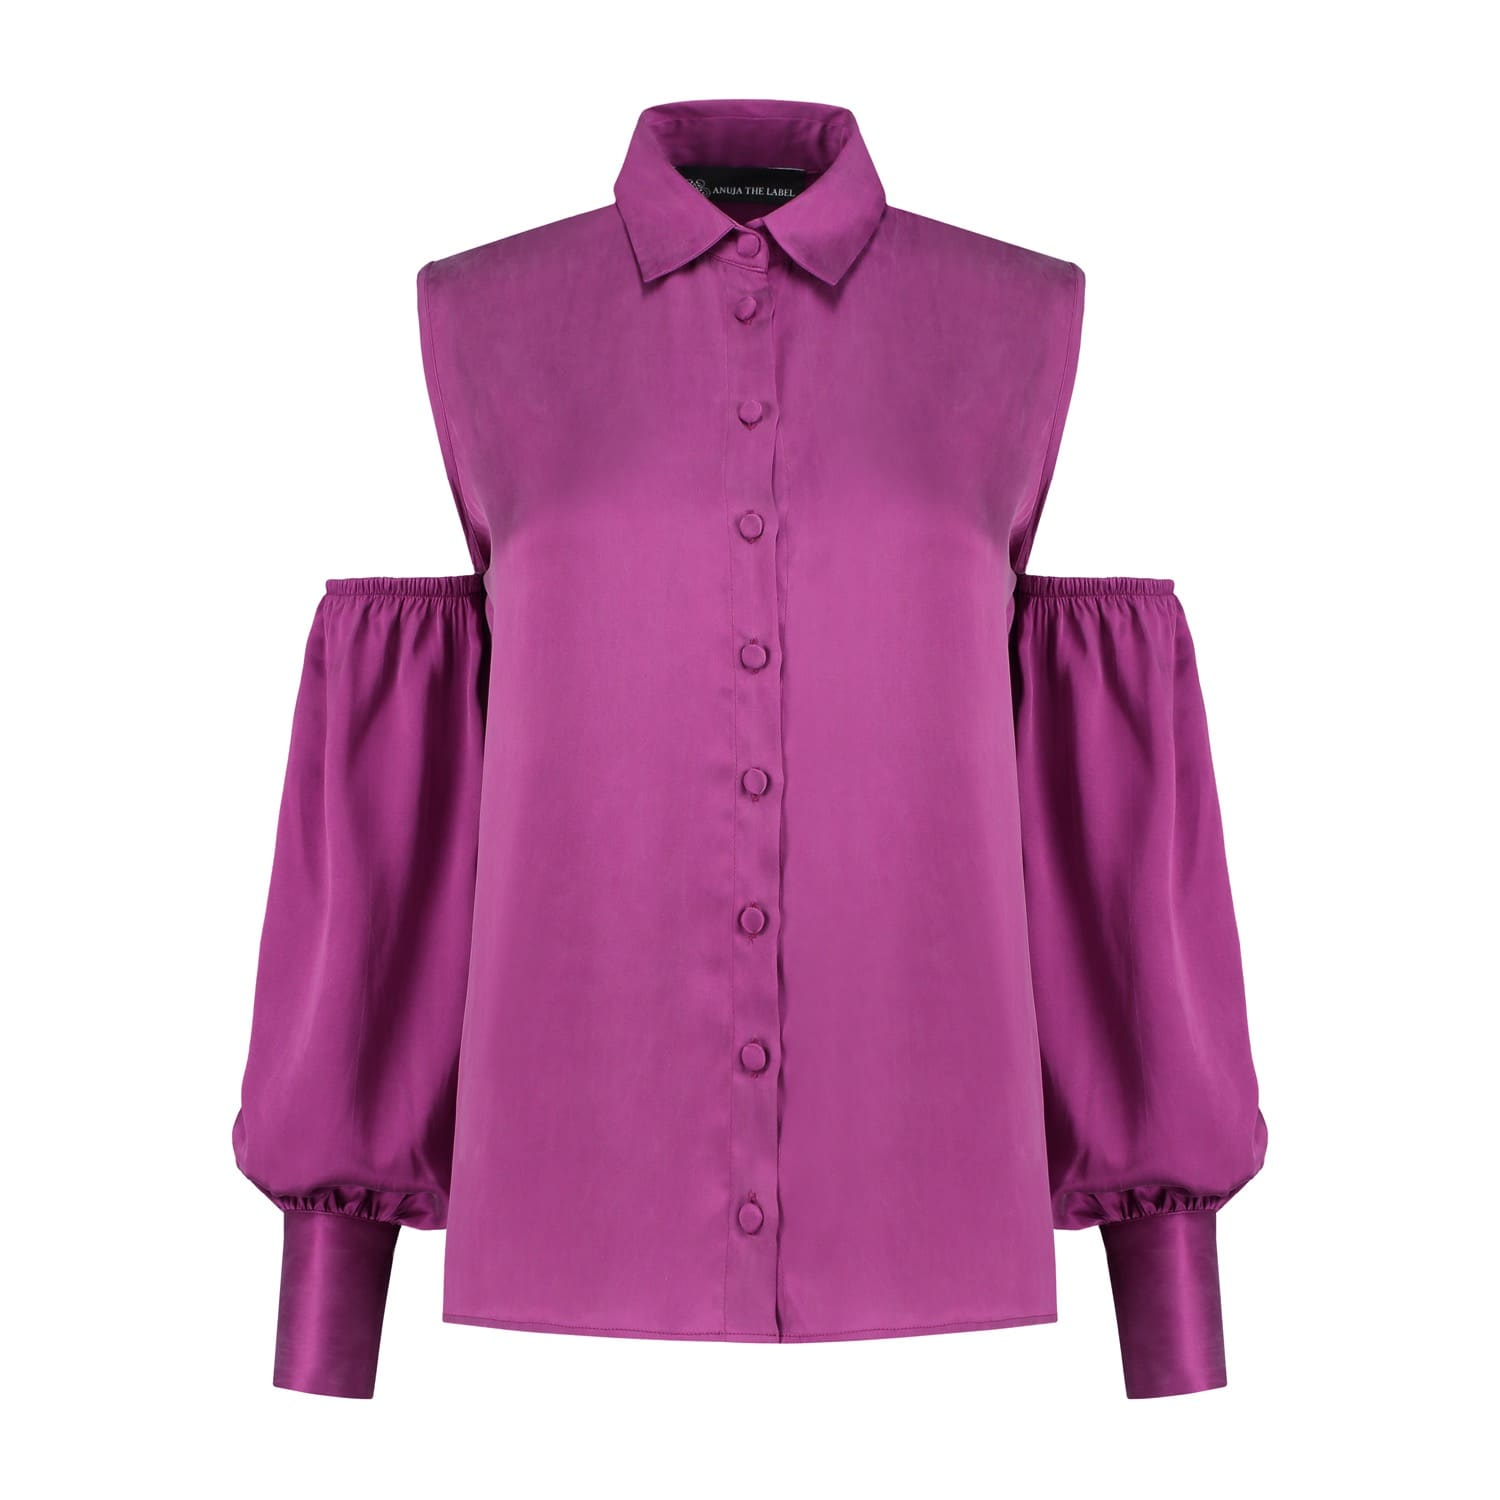 986e35919a0b6 Scarlet Blouse Purple image